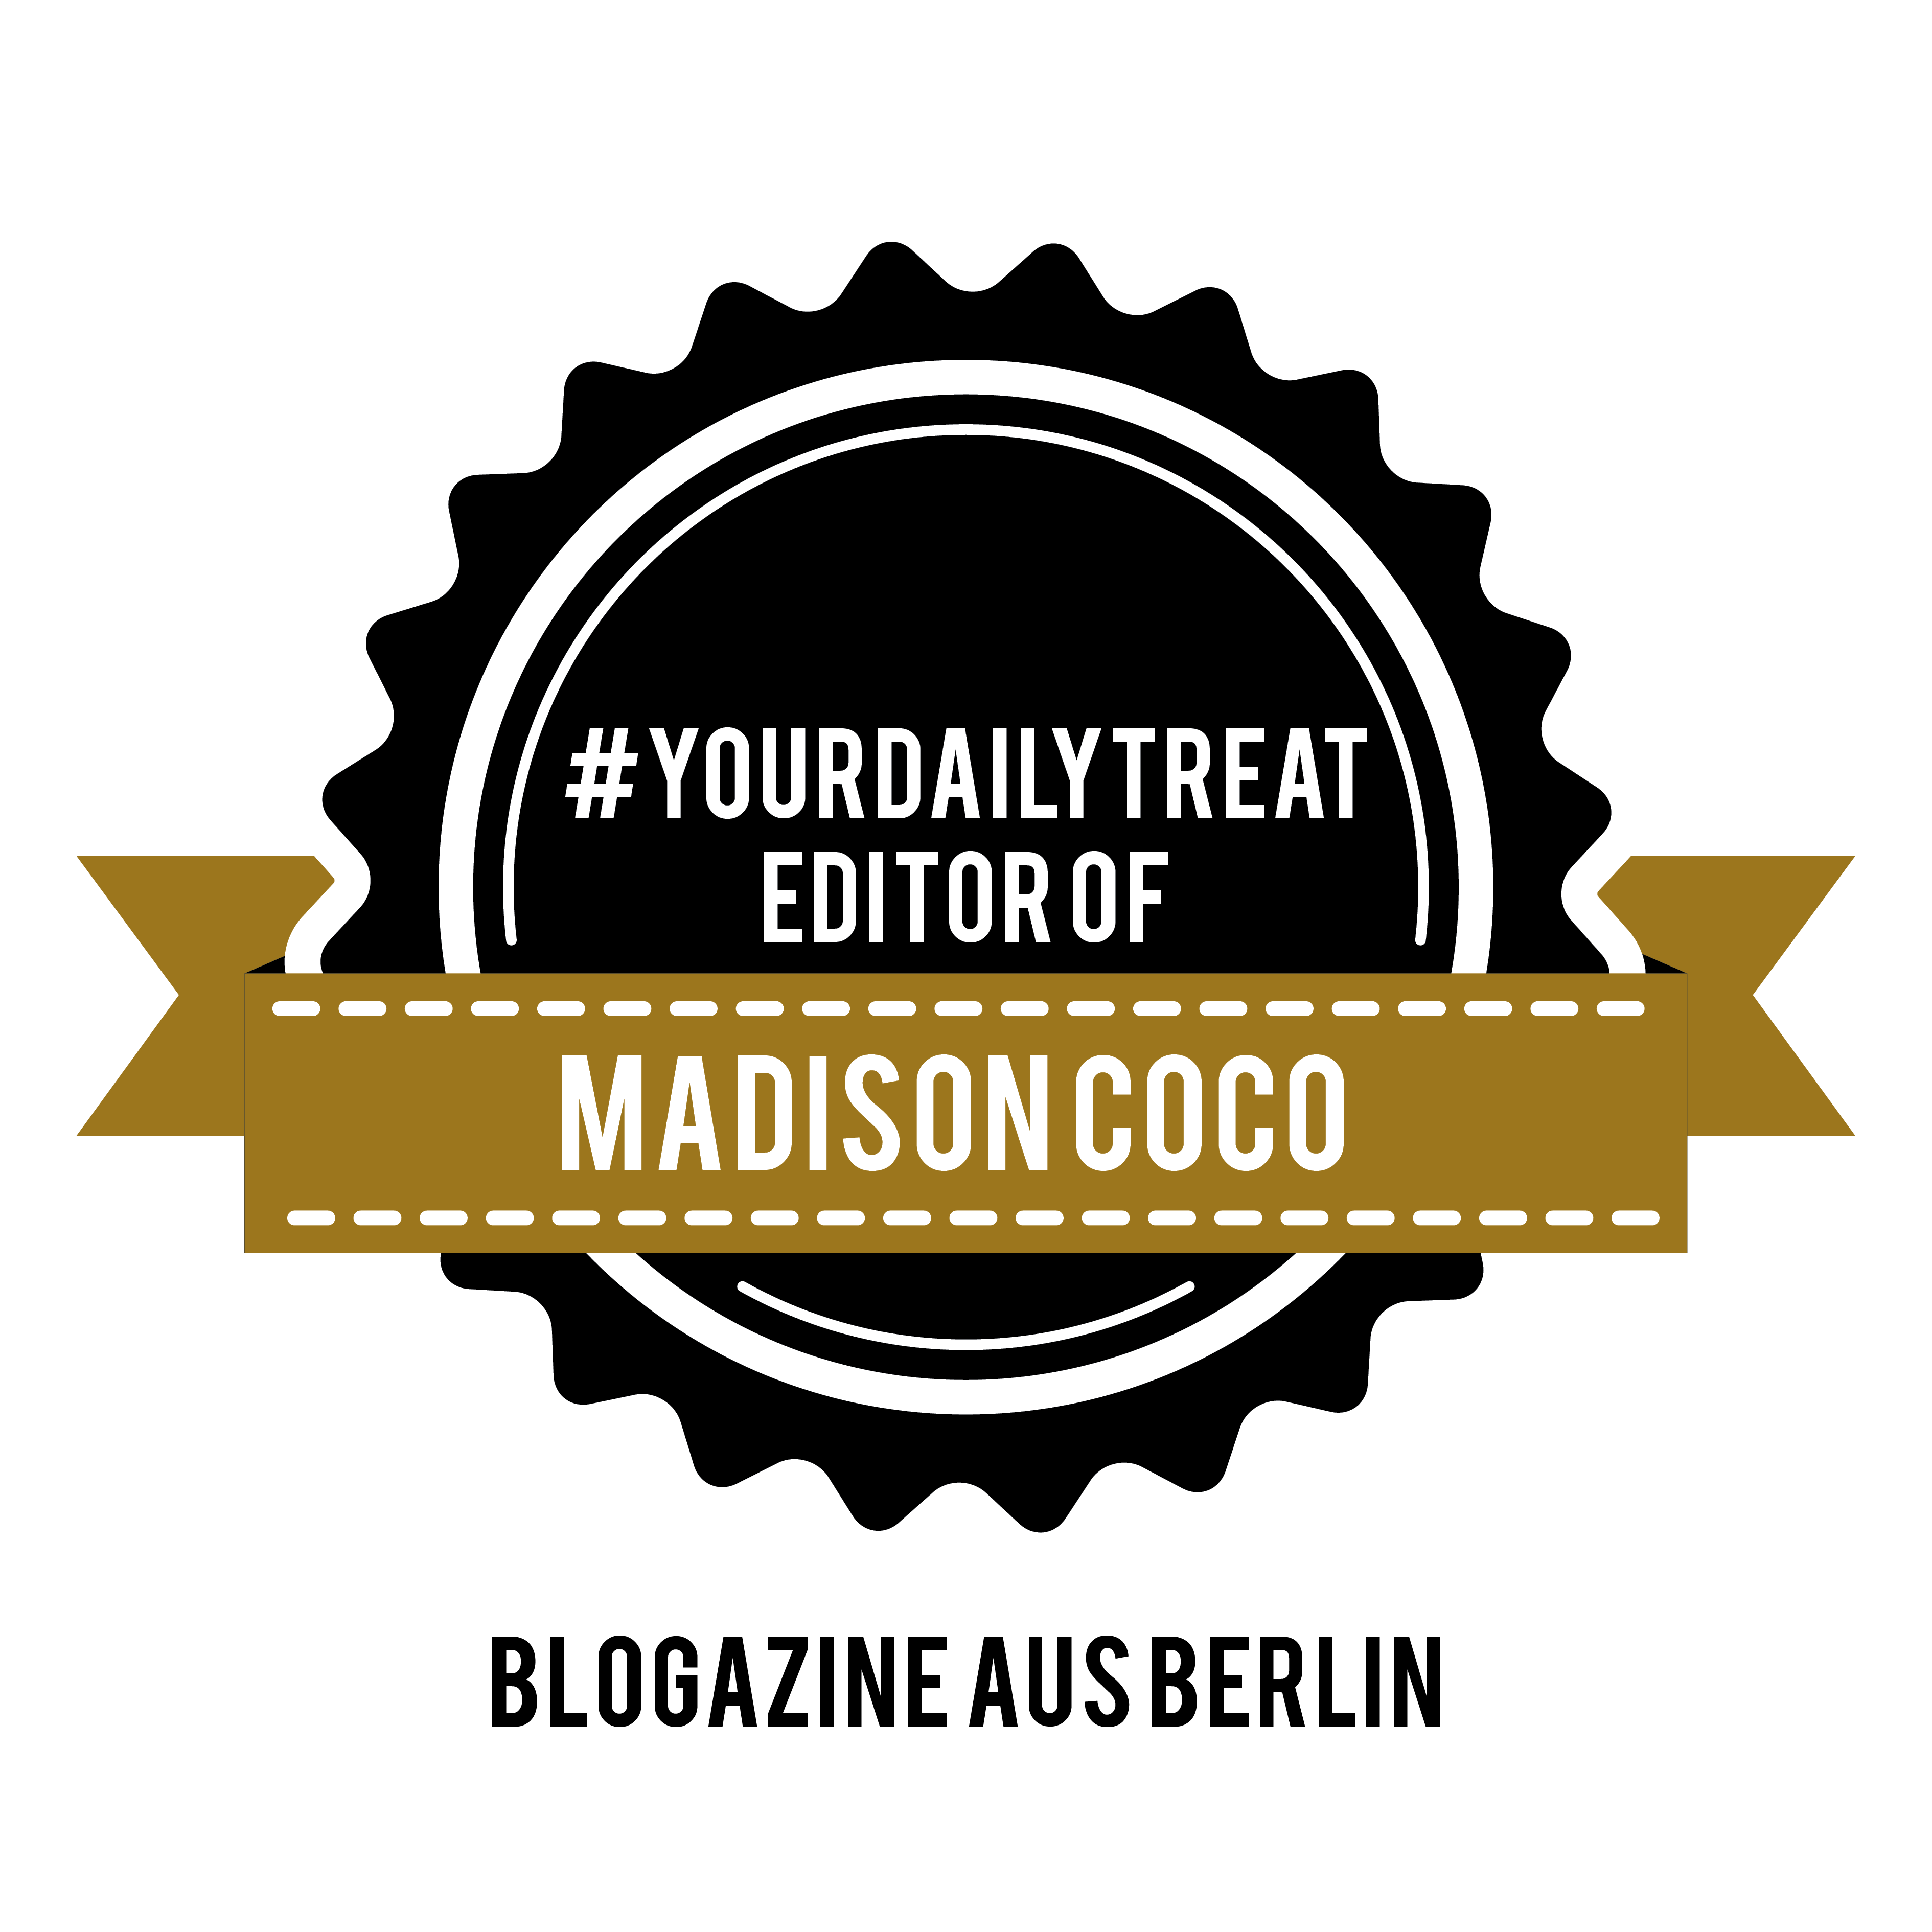 My work for Madison Coco